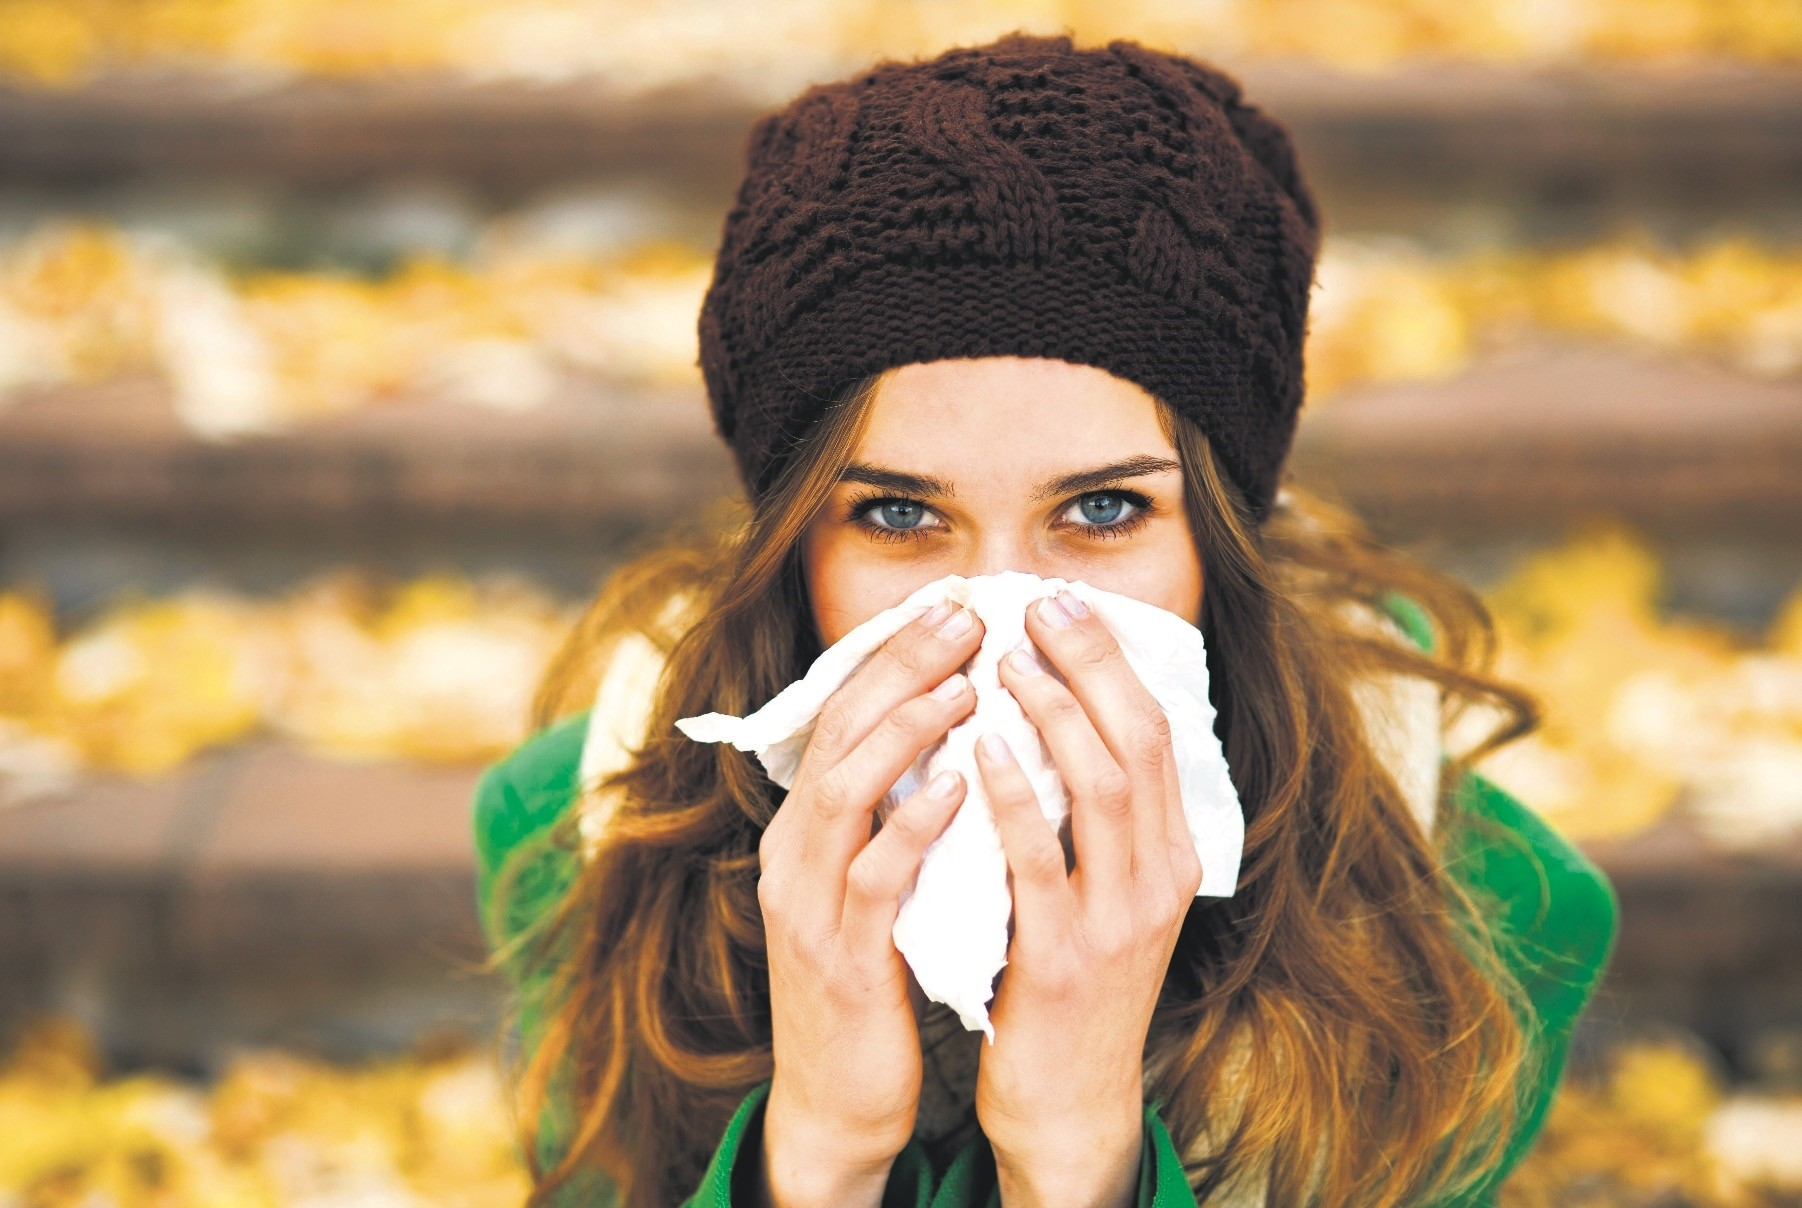 There is no relation between wearing a hat in the cold and protecting yourself from the cold. All you can do is boost your immune system.